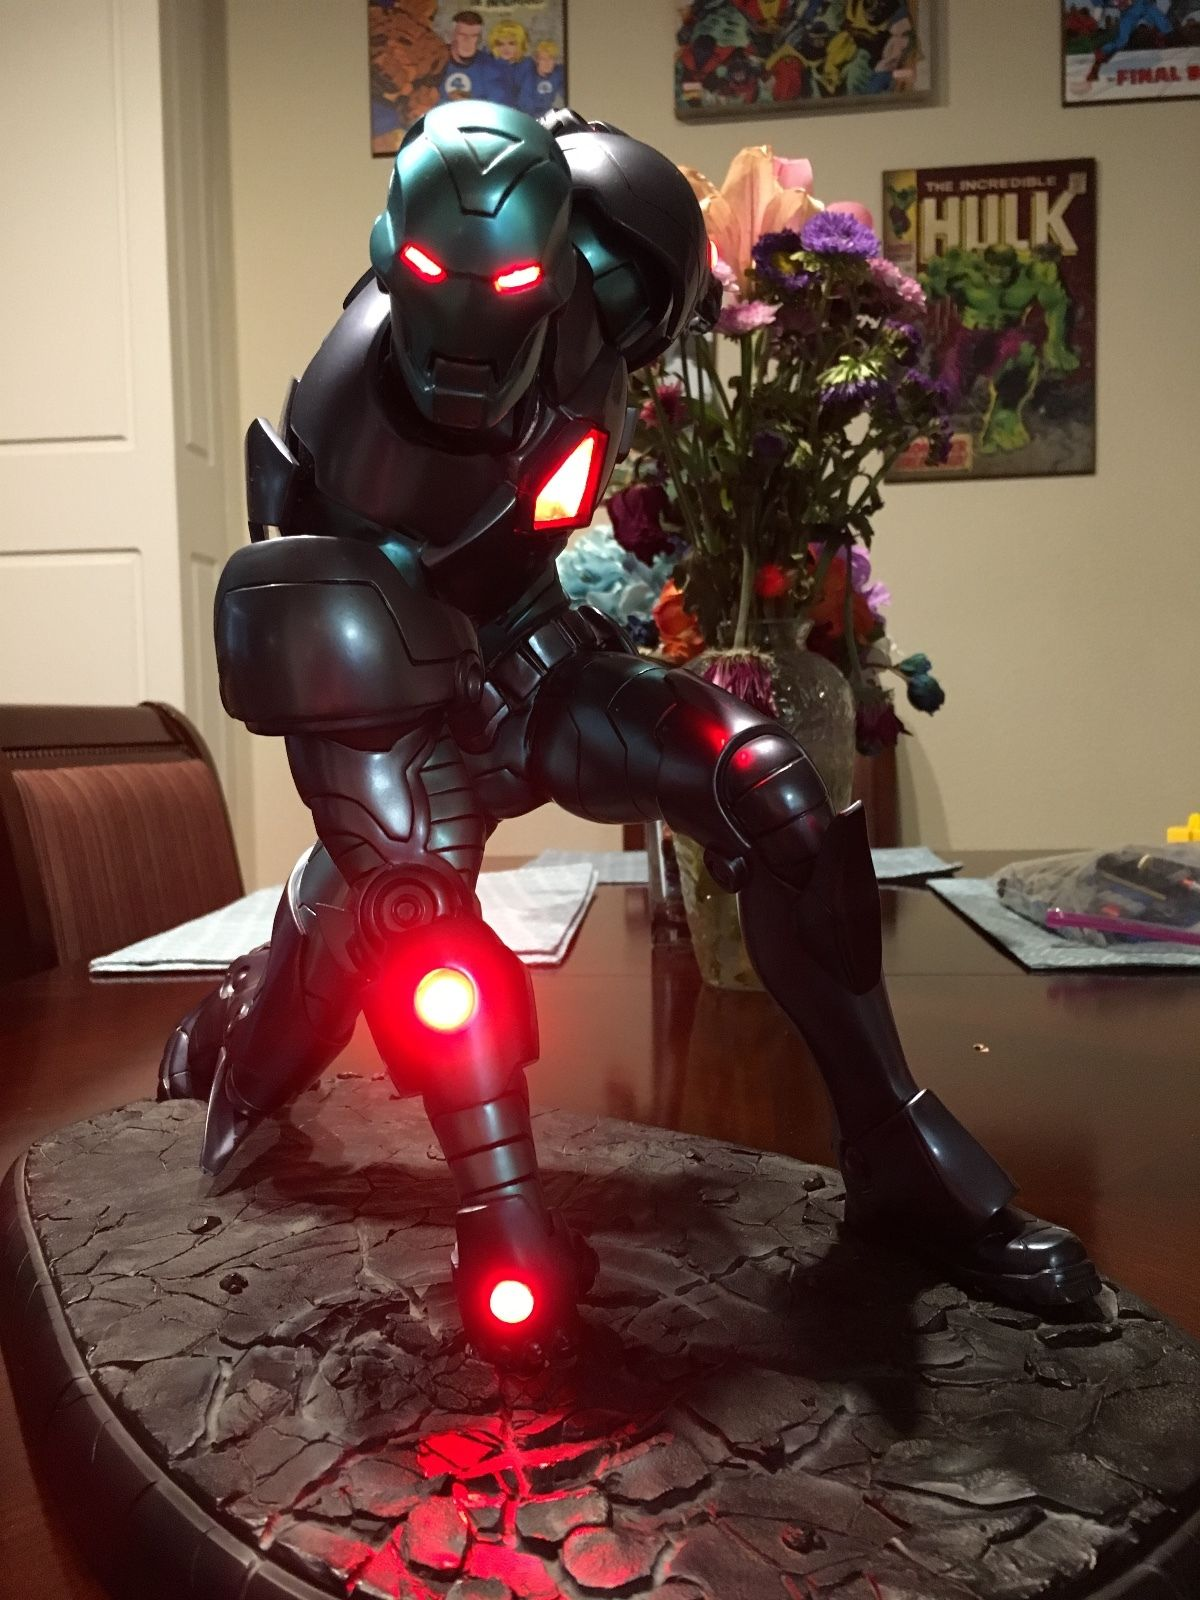 SideShow Collectibles Stealth Iron Man Comiquette #120/1250